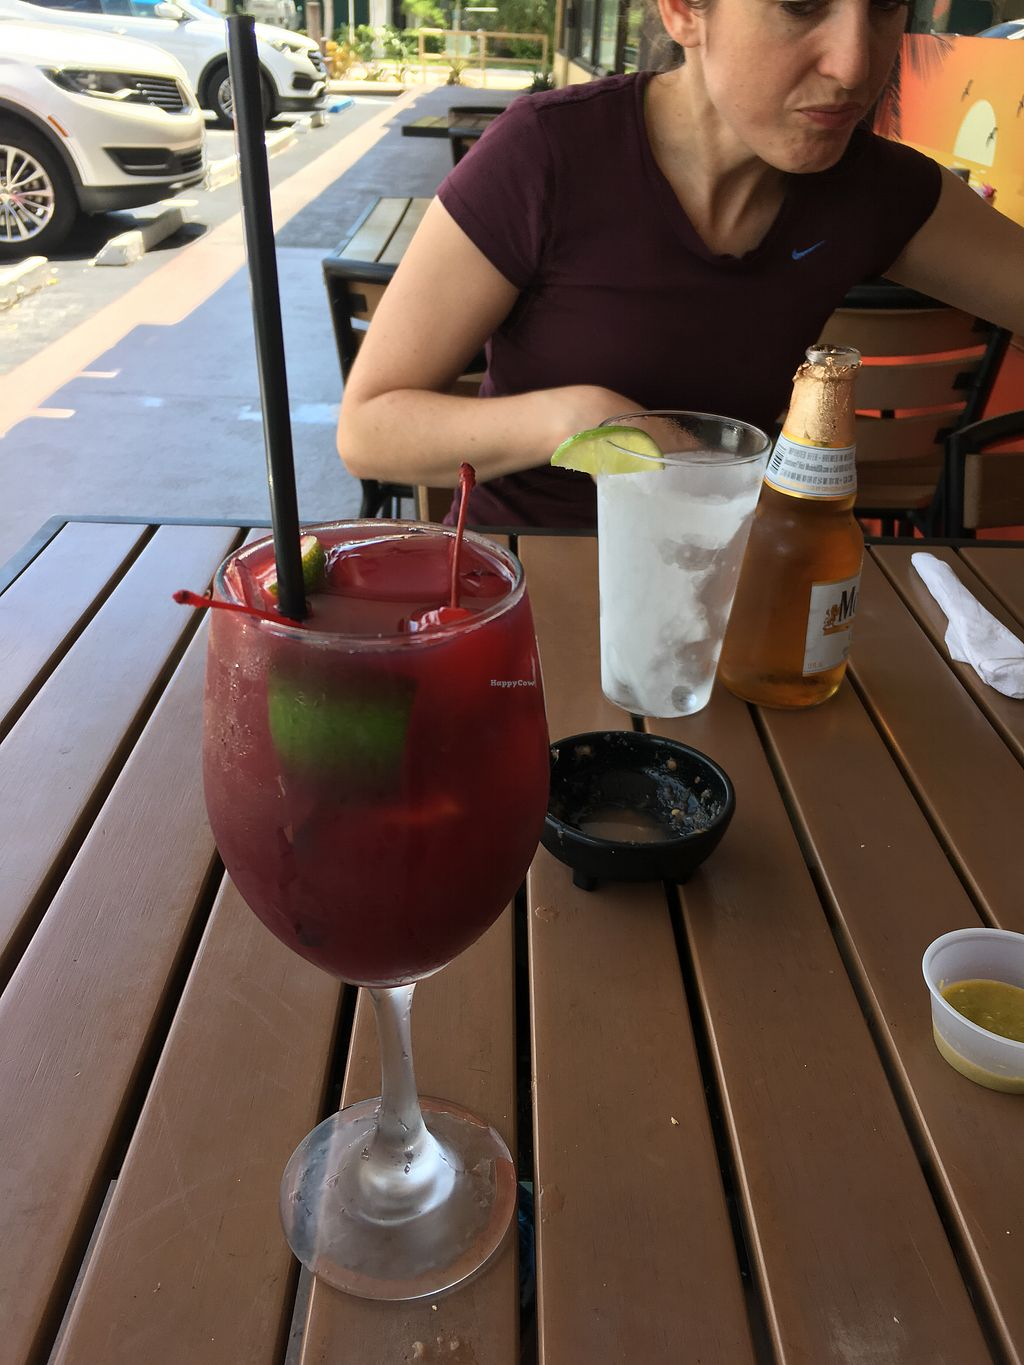 """Photo of Tequila Sunrise Mexican Grill  by <a href=""""/members/profile/giant%20bunnie"""" class=""""title__title"""">giant bunnie</a> <br/>Great drinks / drink specials  <br/> June 24, 2018  - <a href='/contact/abuse/image/40767/419234'>Report</a>"""